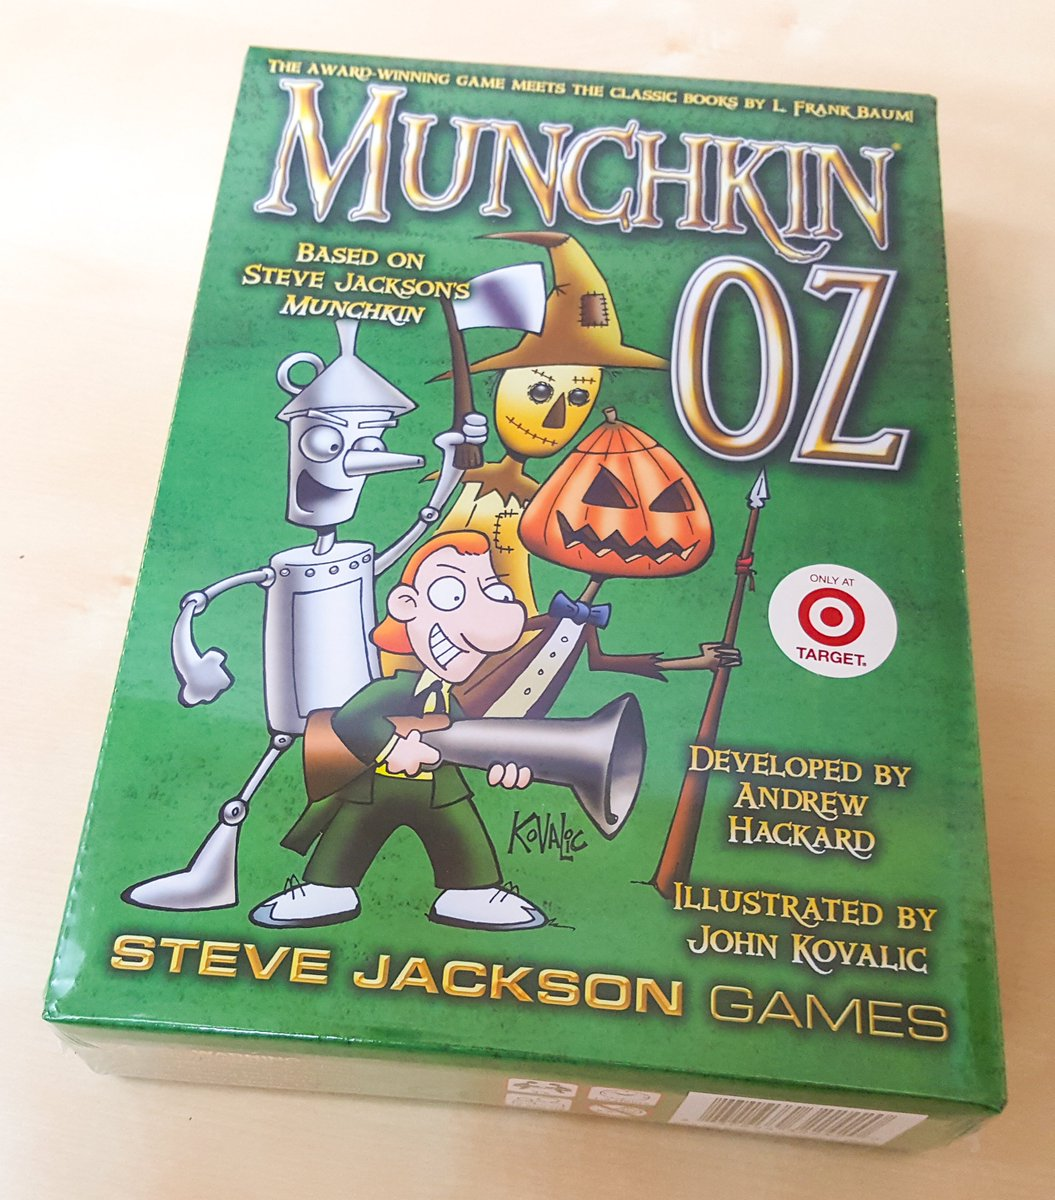 Want to win a copy of #MunchkinOz? Follow, RT and reply with your wish for the Wizard for a chance to win! -HS https://t.co/2RPnyx8y0g